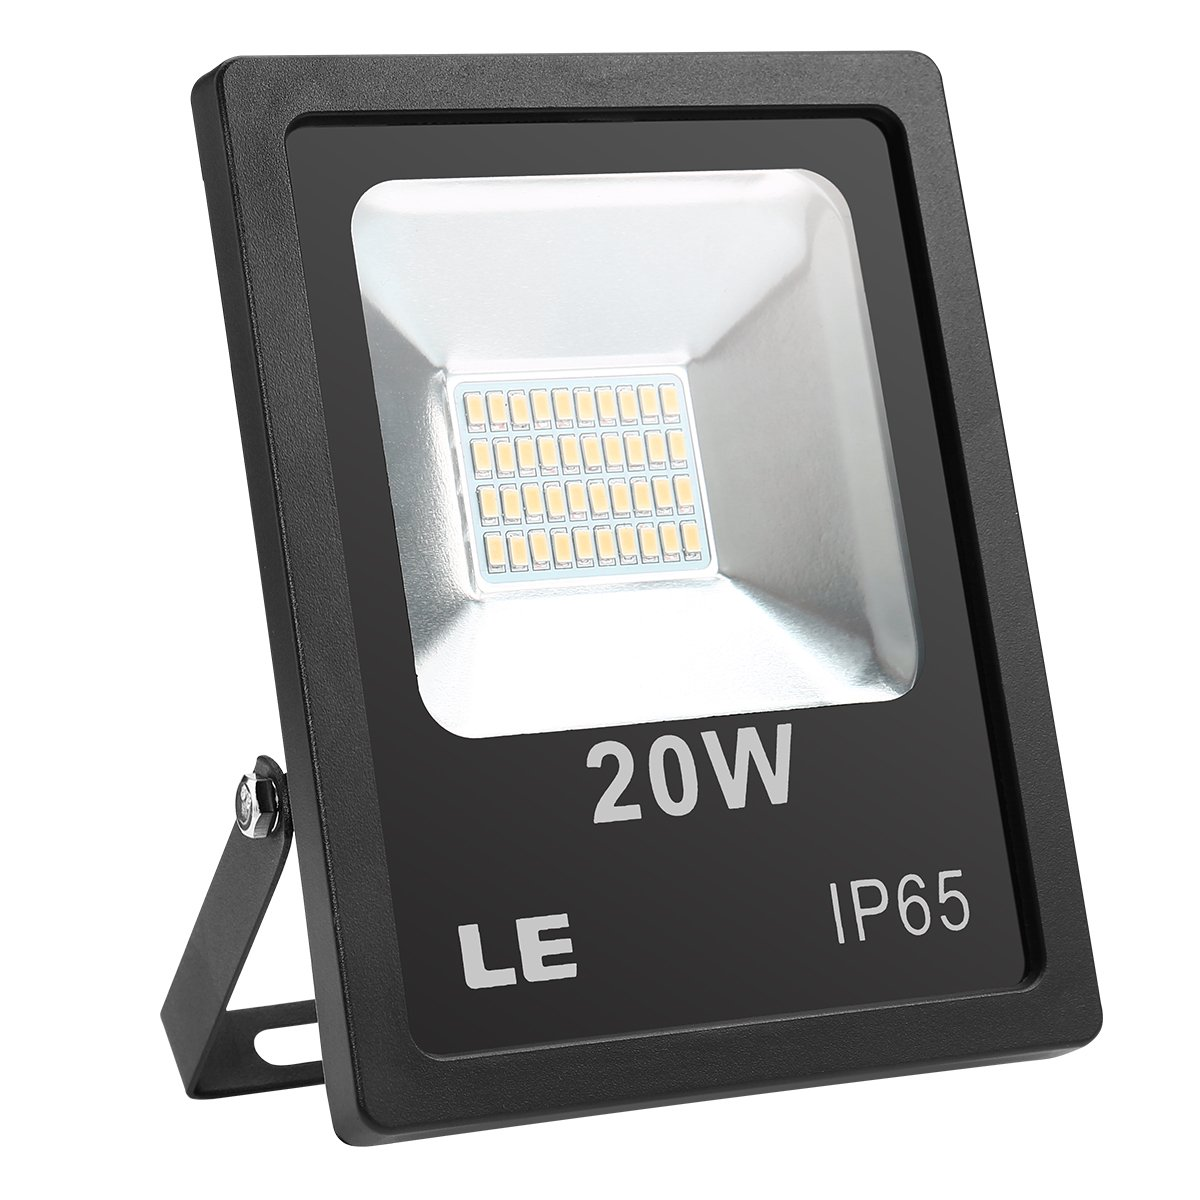 LE 20W 1600lm Super Bright Outdoor LED Flood Lights, Warm White 3000K, 200W Halogen Bulb Equivalent, Waterproof, Security Lights, Indoor & Outdoor Floodlight.